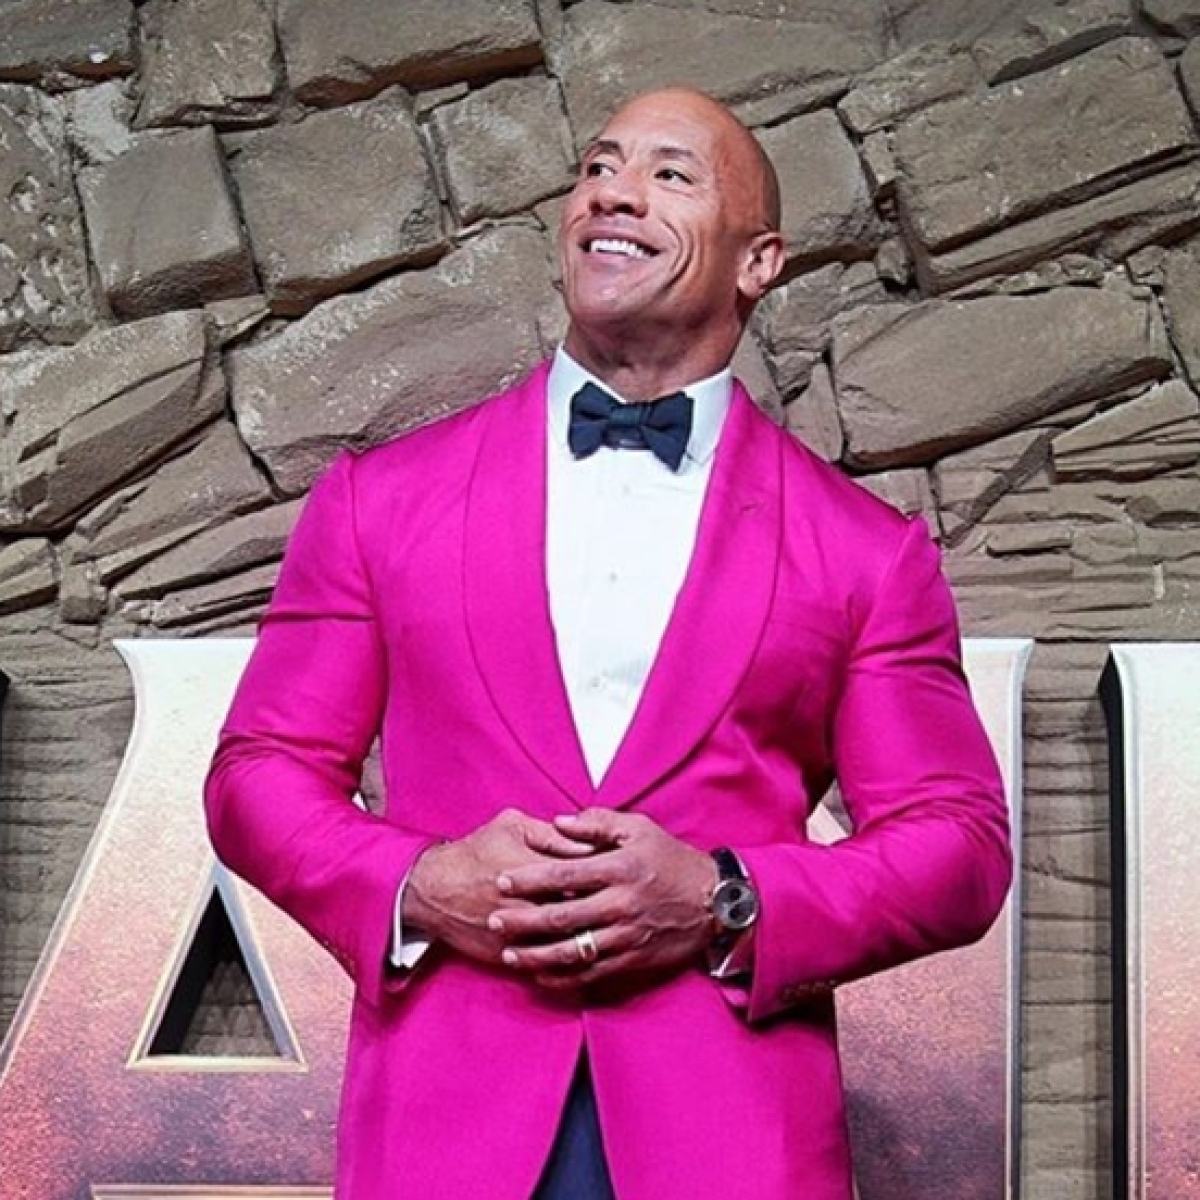 You might see me in a Bollywood movie someday: Dwayne Johnson